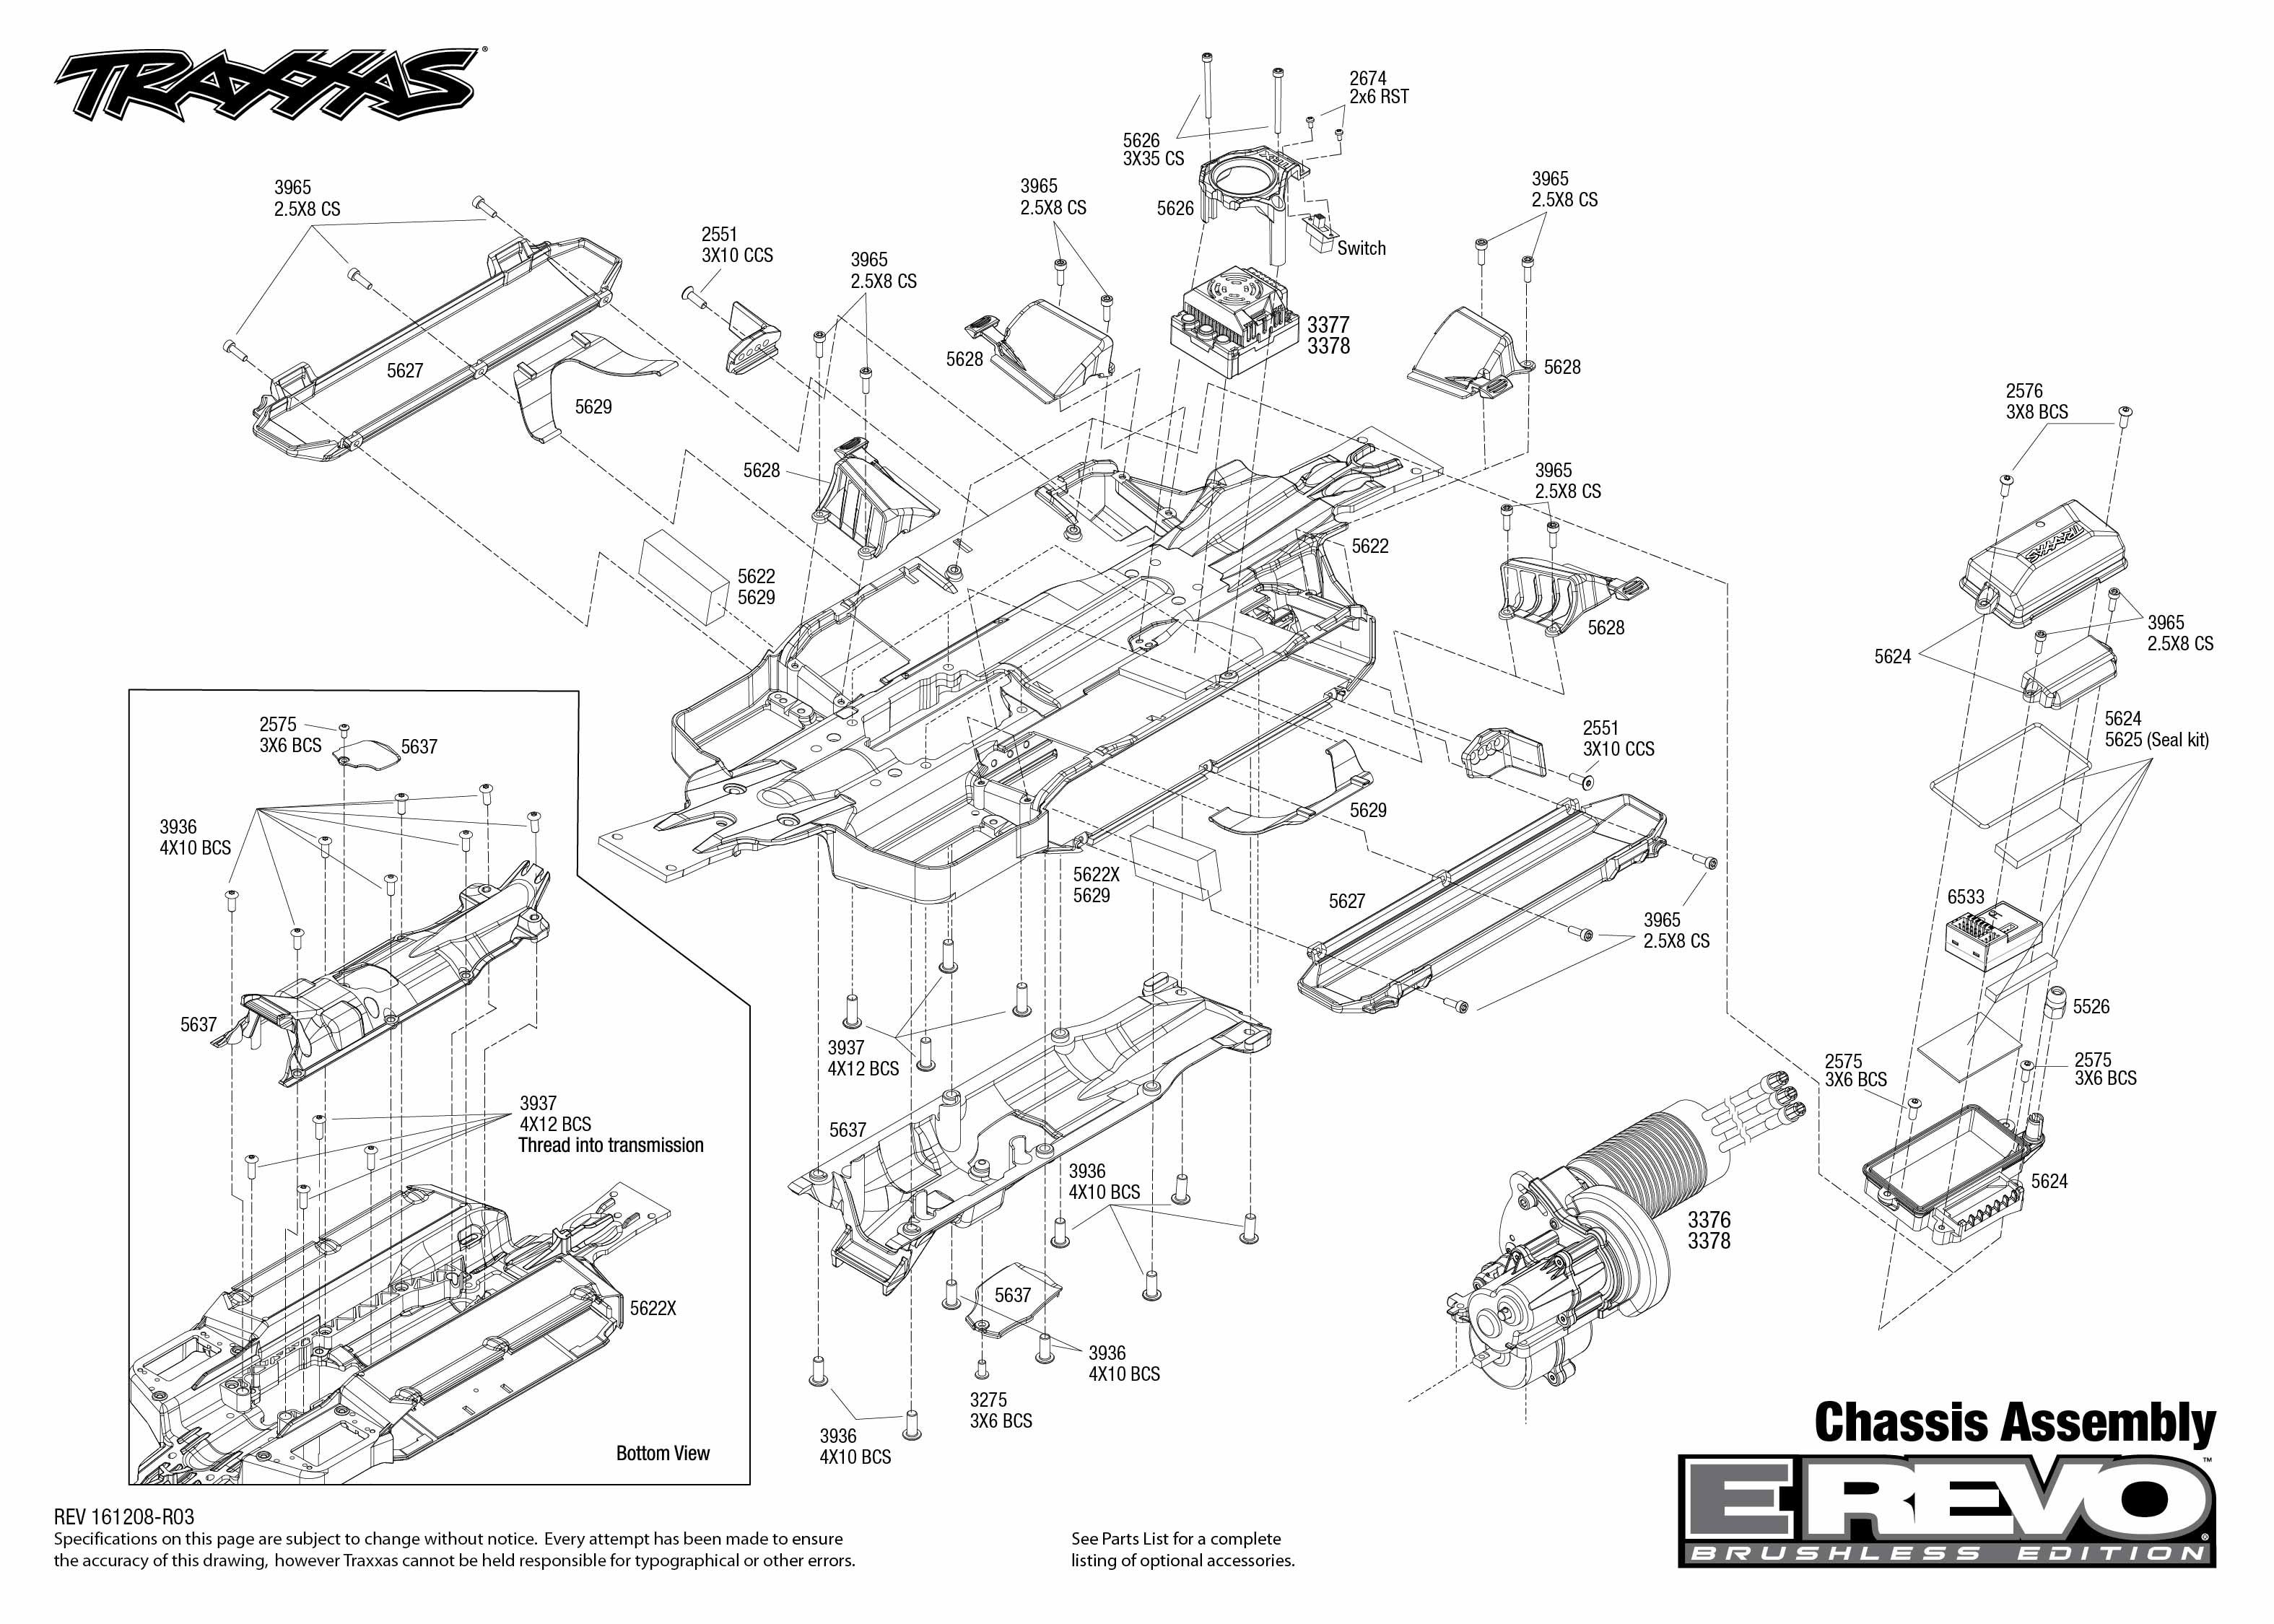 Outstanding traxxas stede 4x4 parts diagram ideas best image appealing t maxx parts diagram gallery best image wiring diagram pooptronica Images